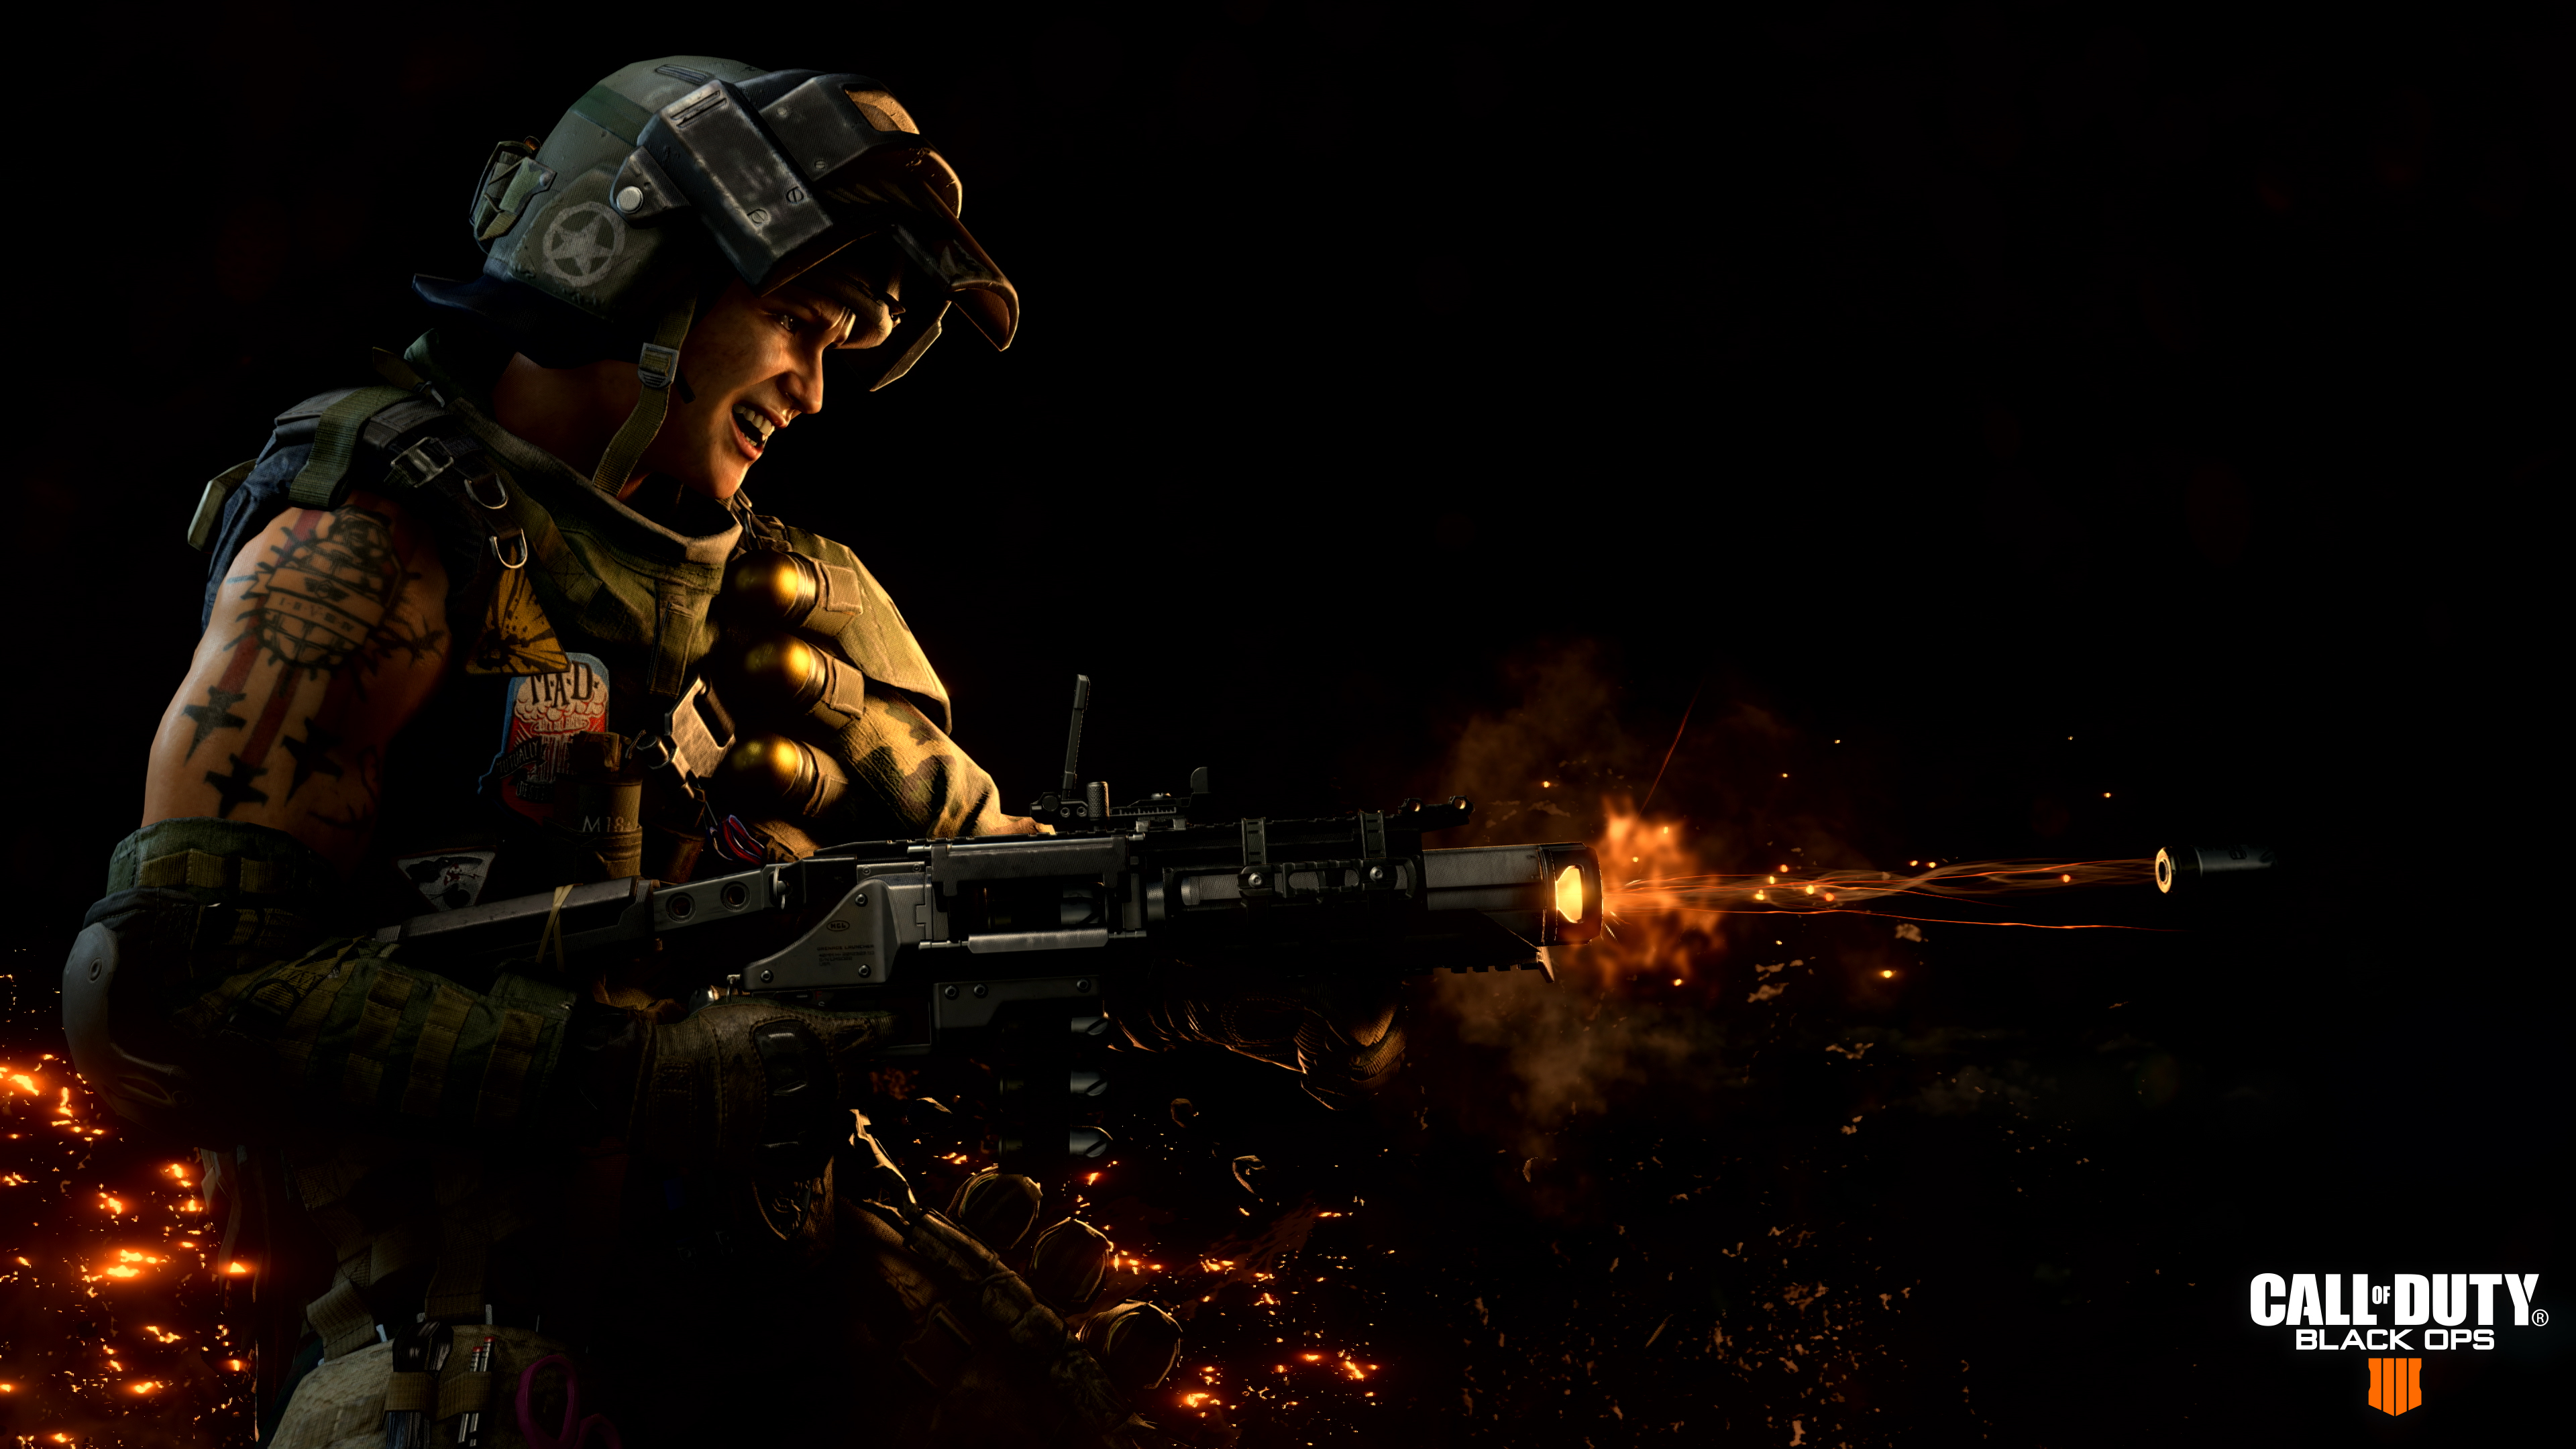 ultra hd call of duty wallpaper 1920x1080